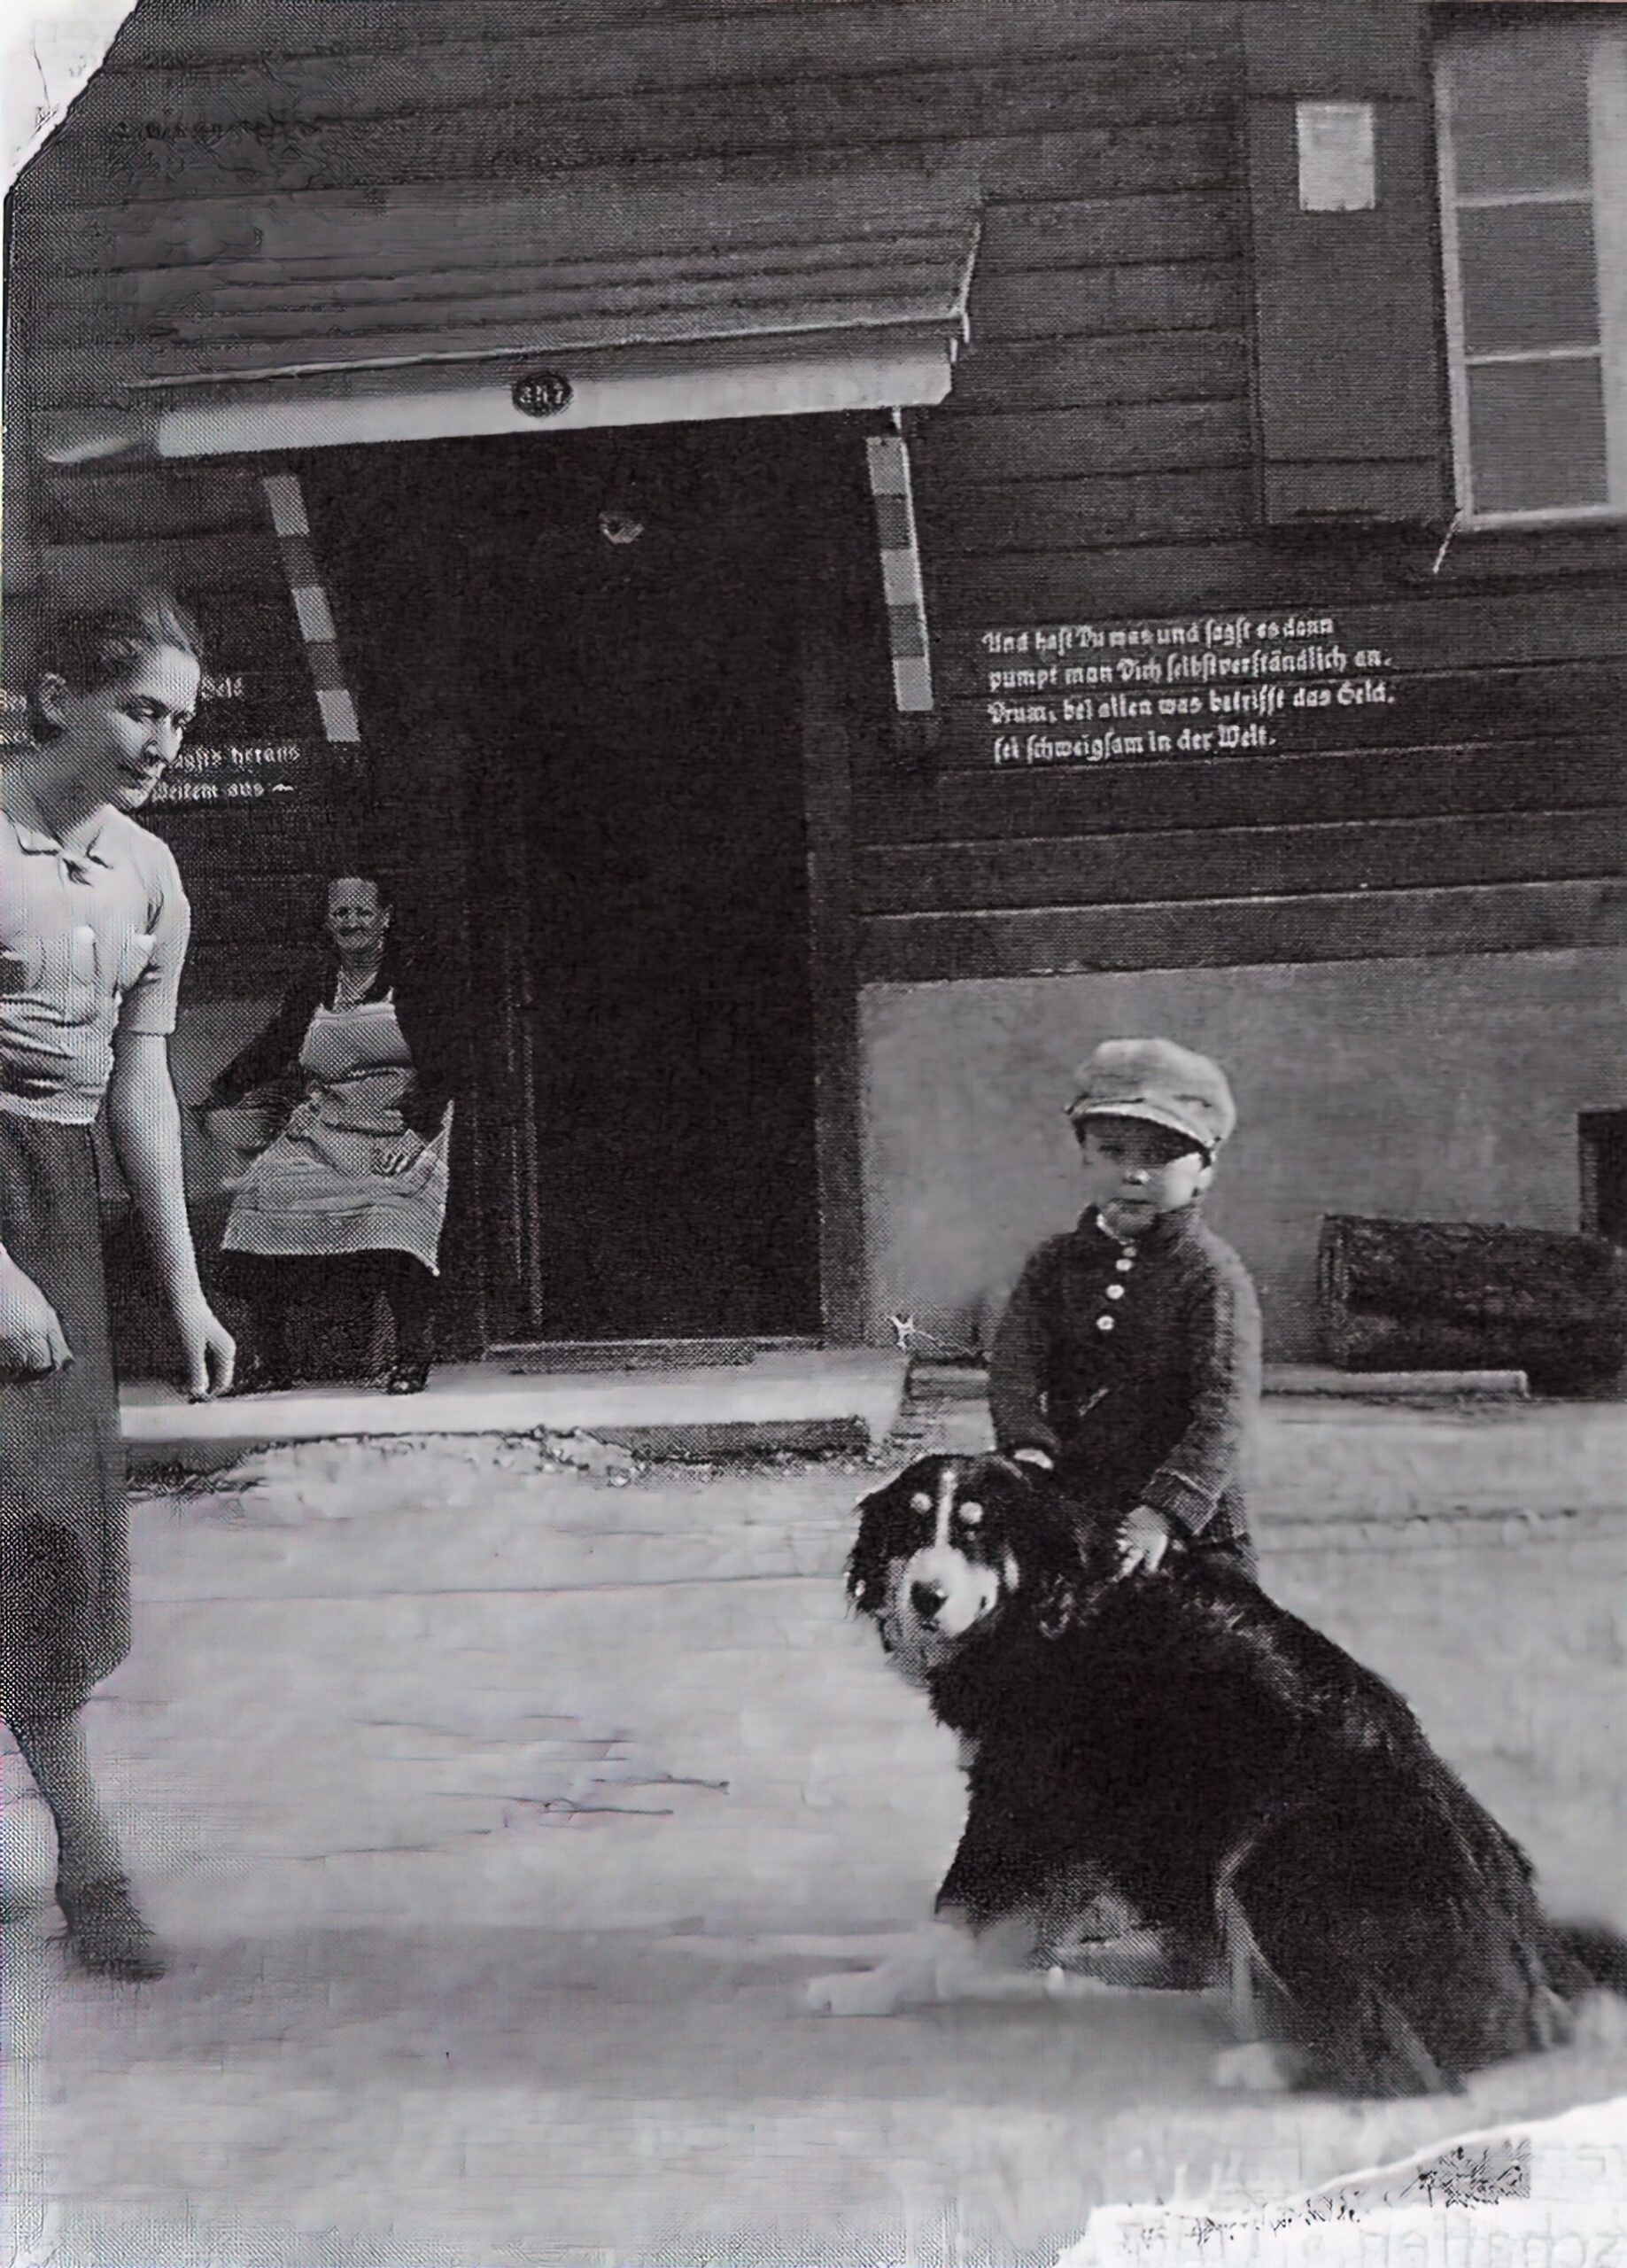 Eduard Albert Meier, at about 4 years old, with Barry, the Bernese mountain dog of the family